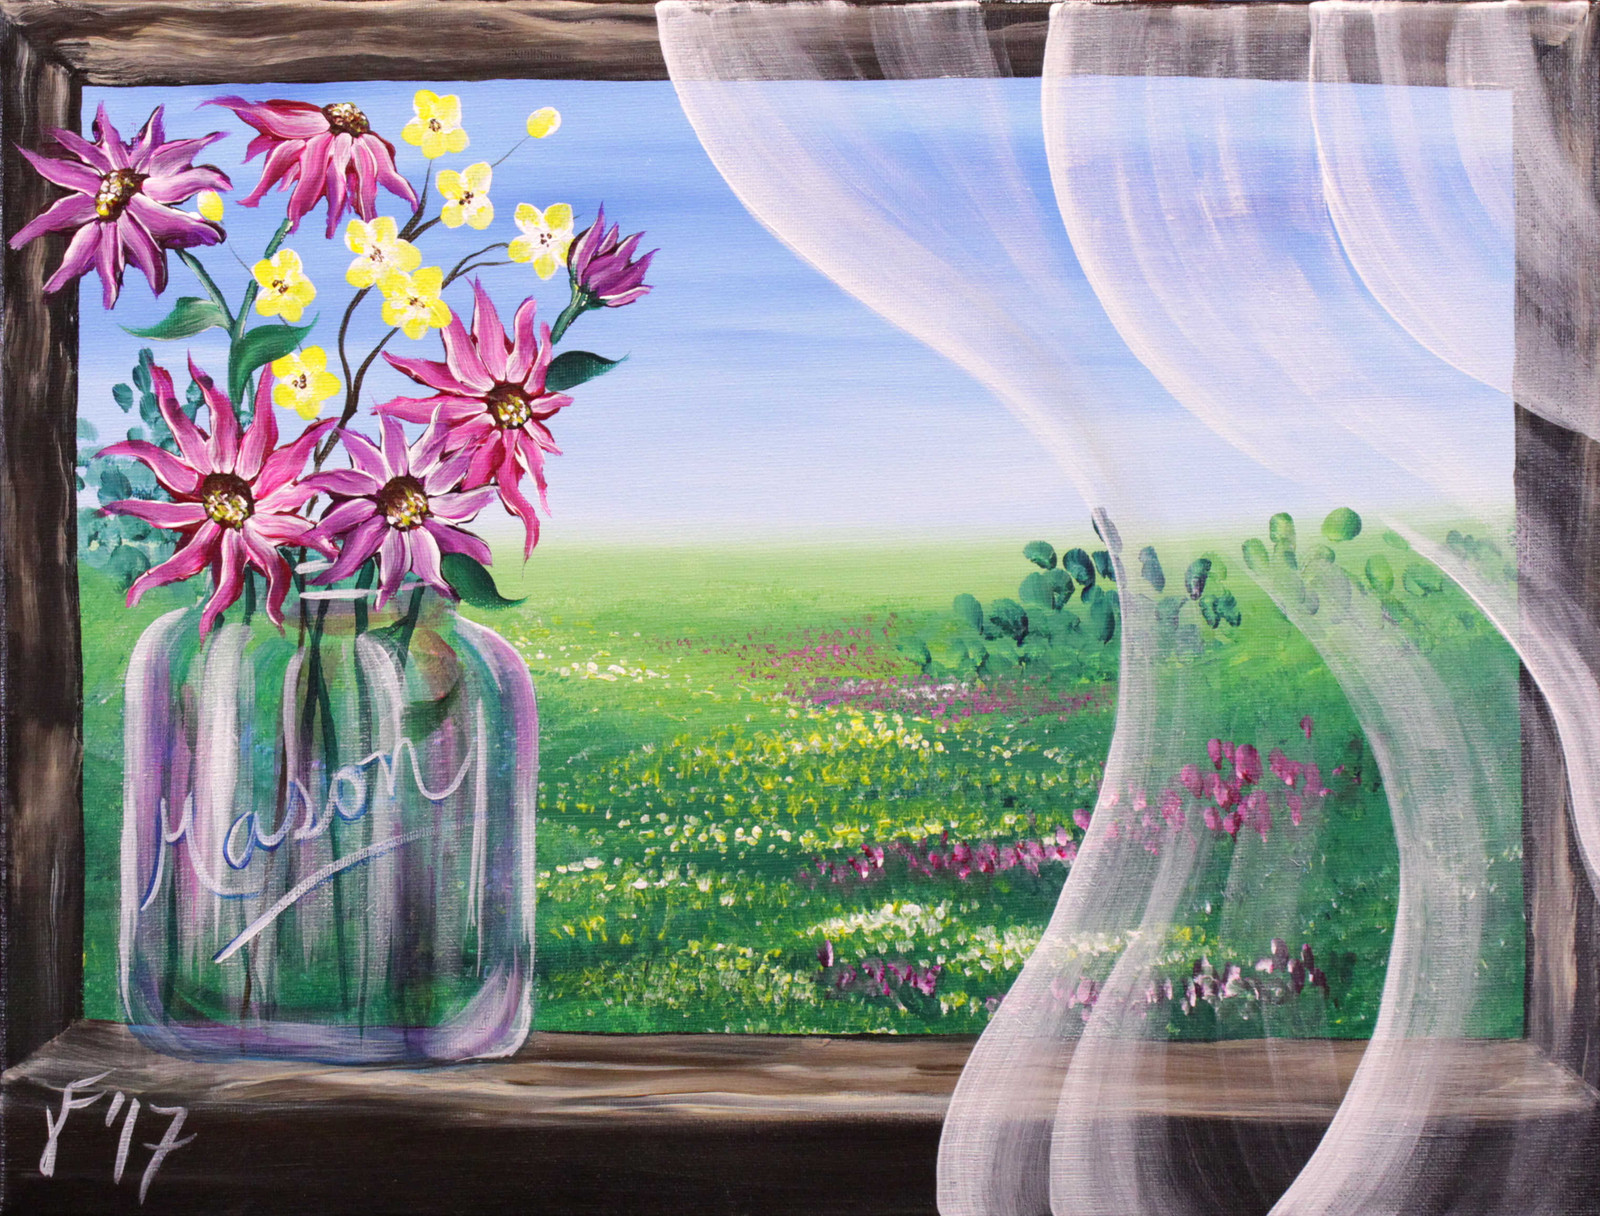 Painting with Jane: Free acrylic painting tutorials for